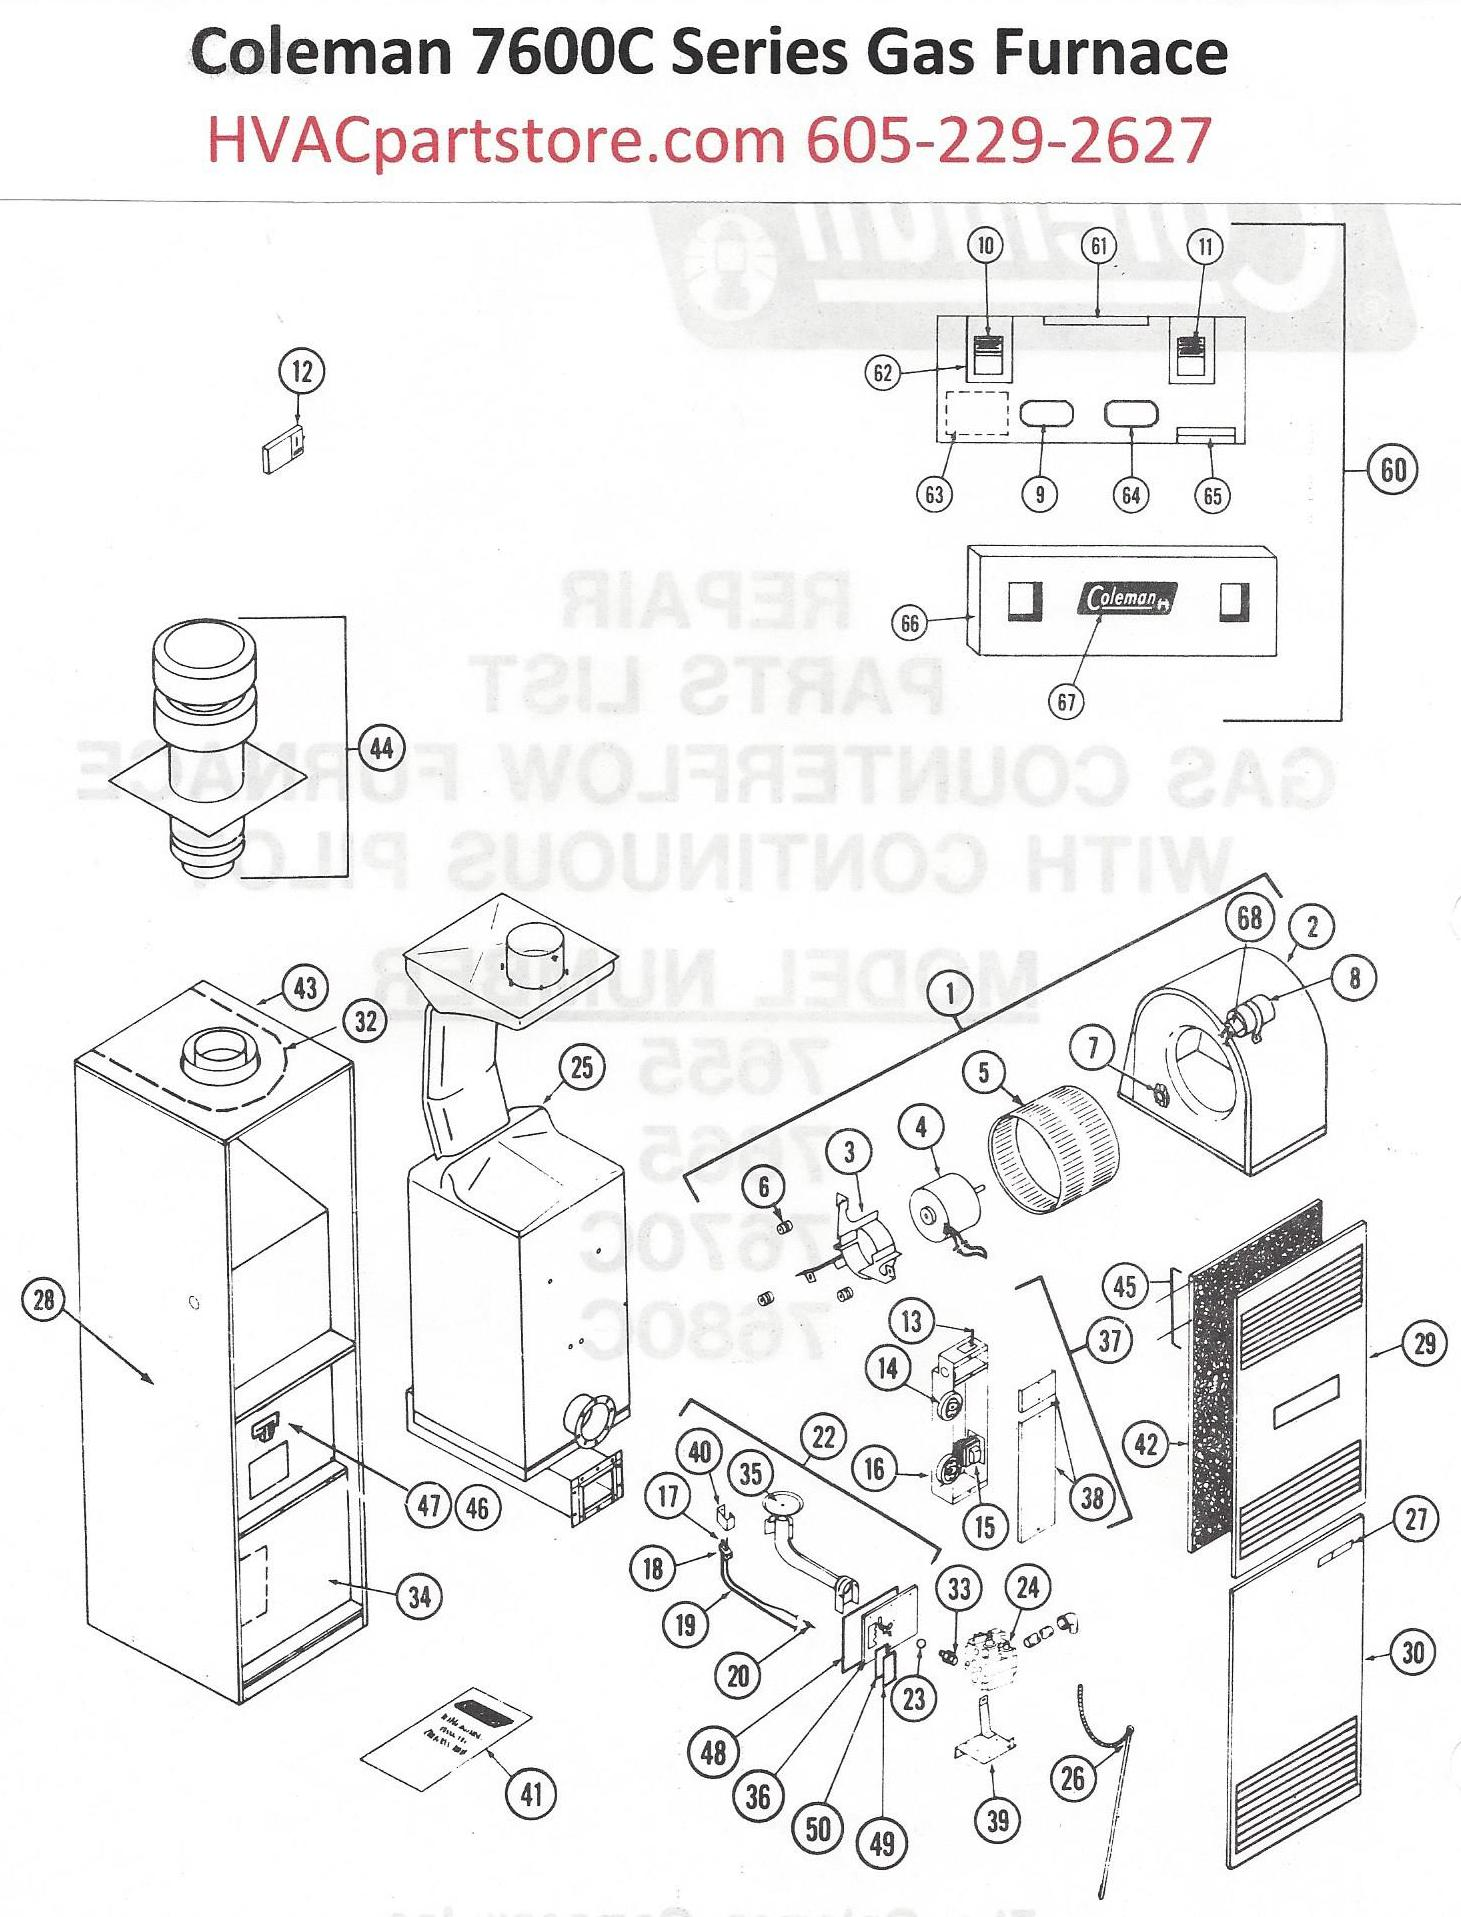 7680c856 coleman gas furnace parts tagged manual hvacpartstore click here to view a manual for the coleman 7680c856 which includes wiring diagrams